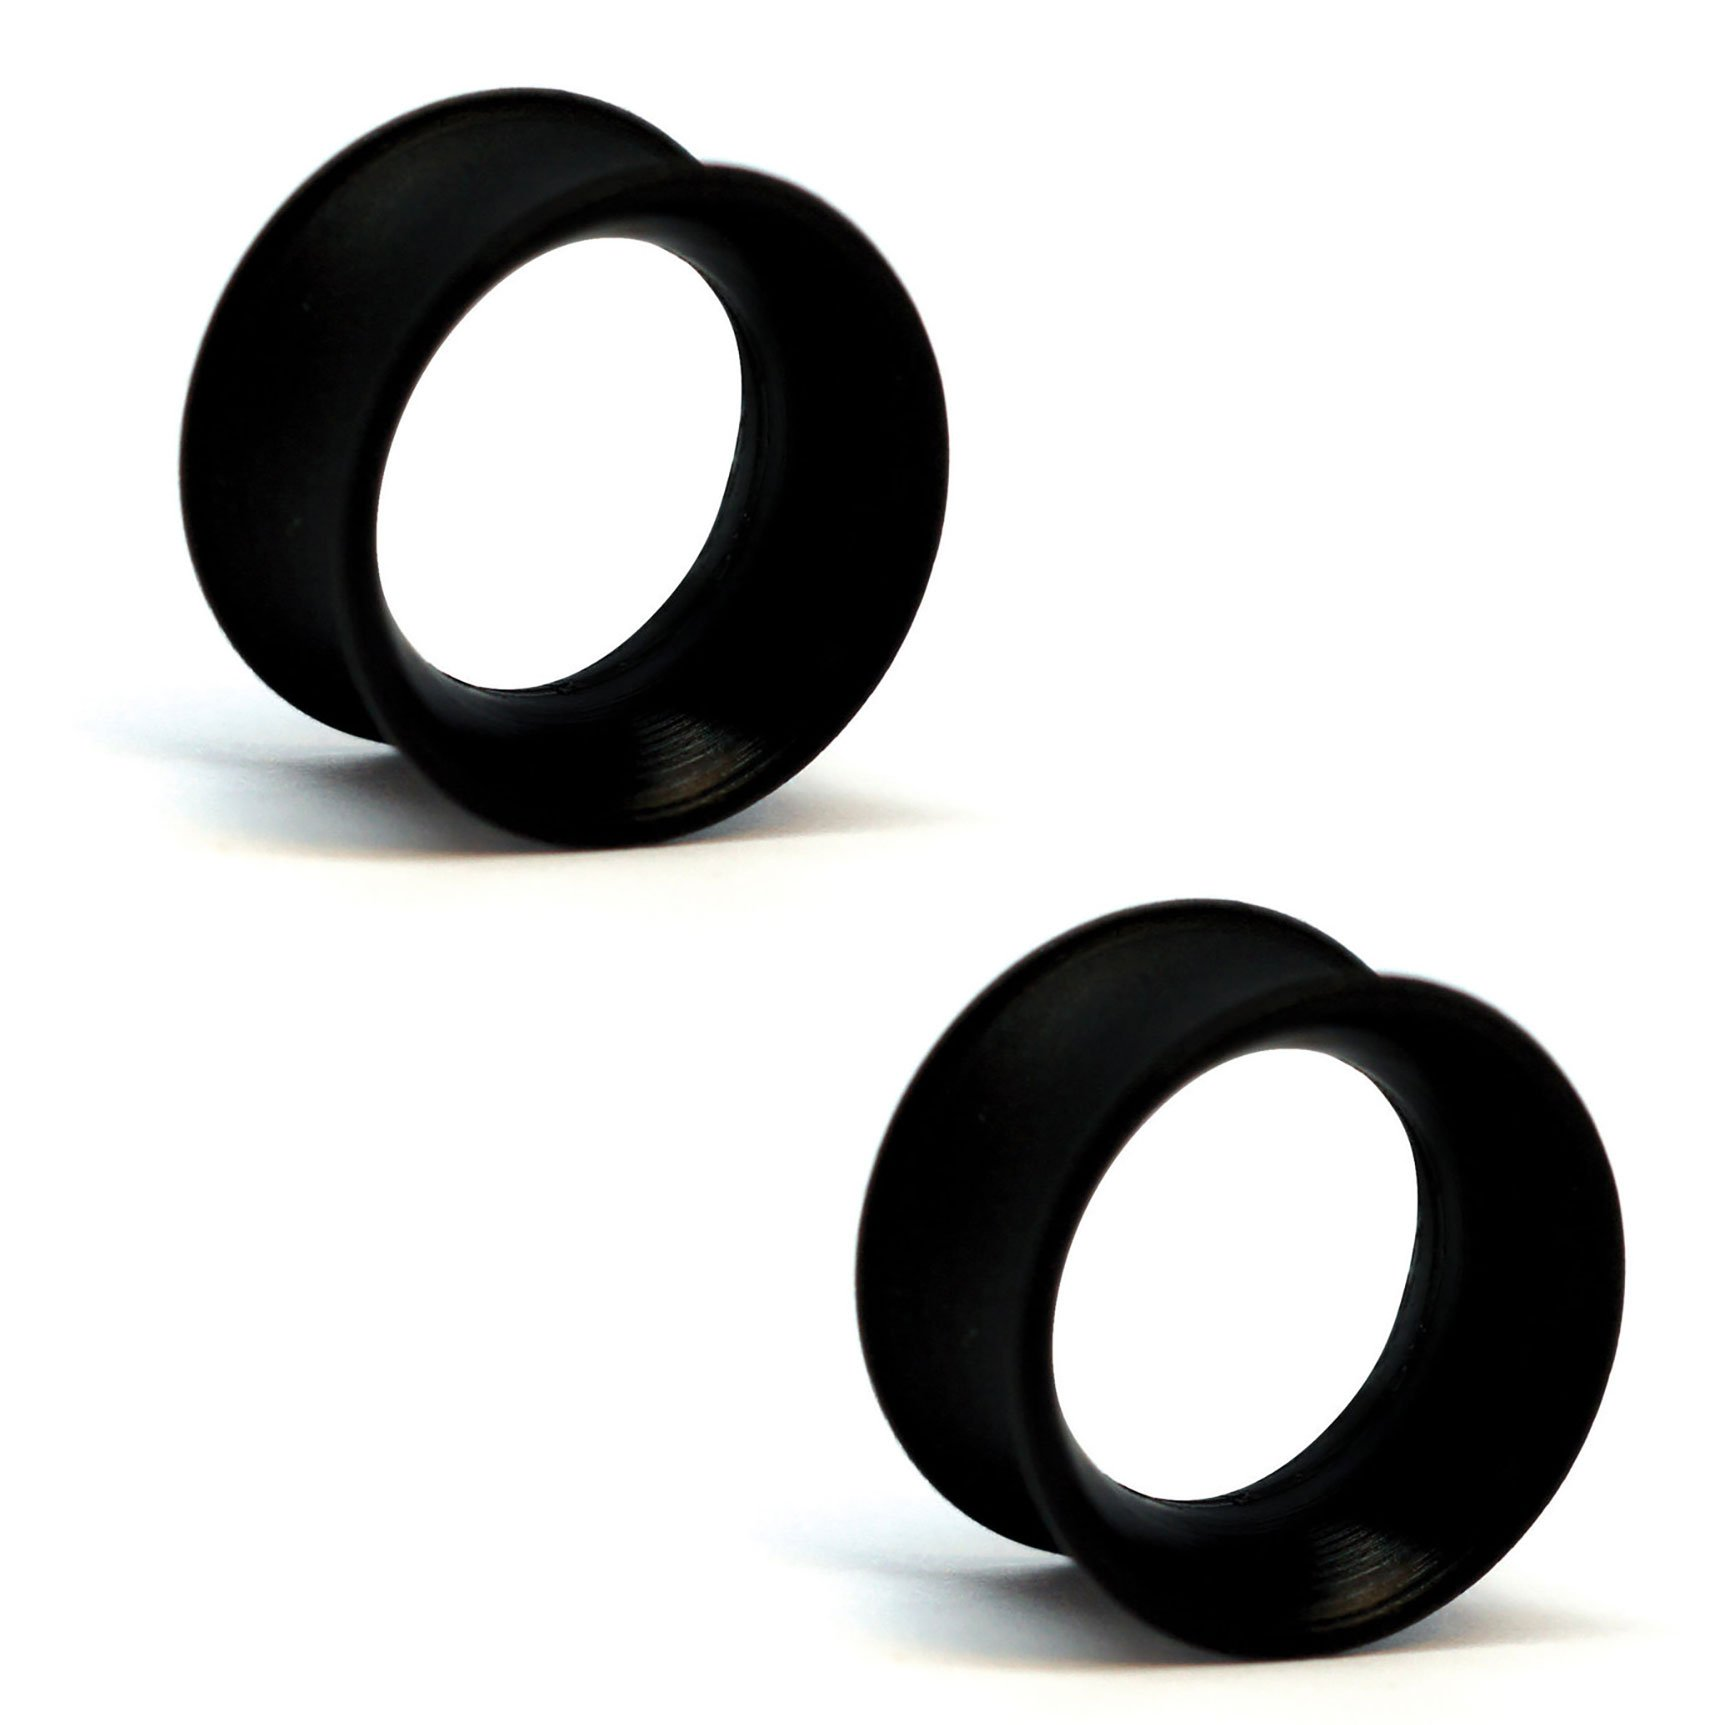 Pair of Silicone Double Flared Skin Eyelets: 3'', wearable length: 3/8'', Black by Kaos Softwear